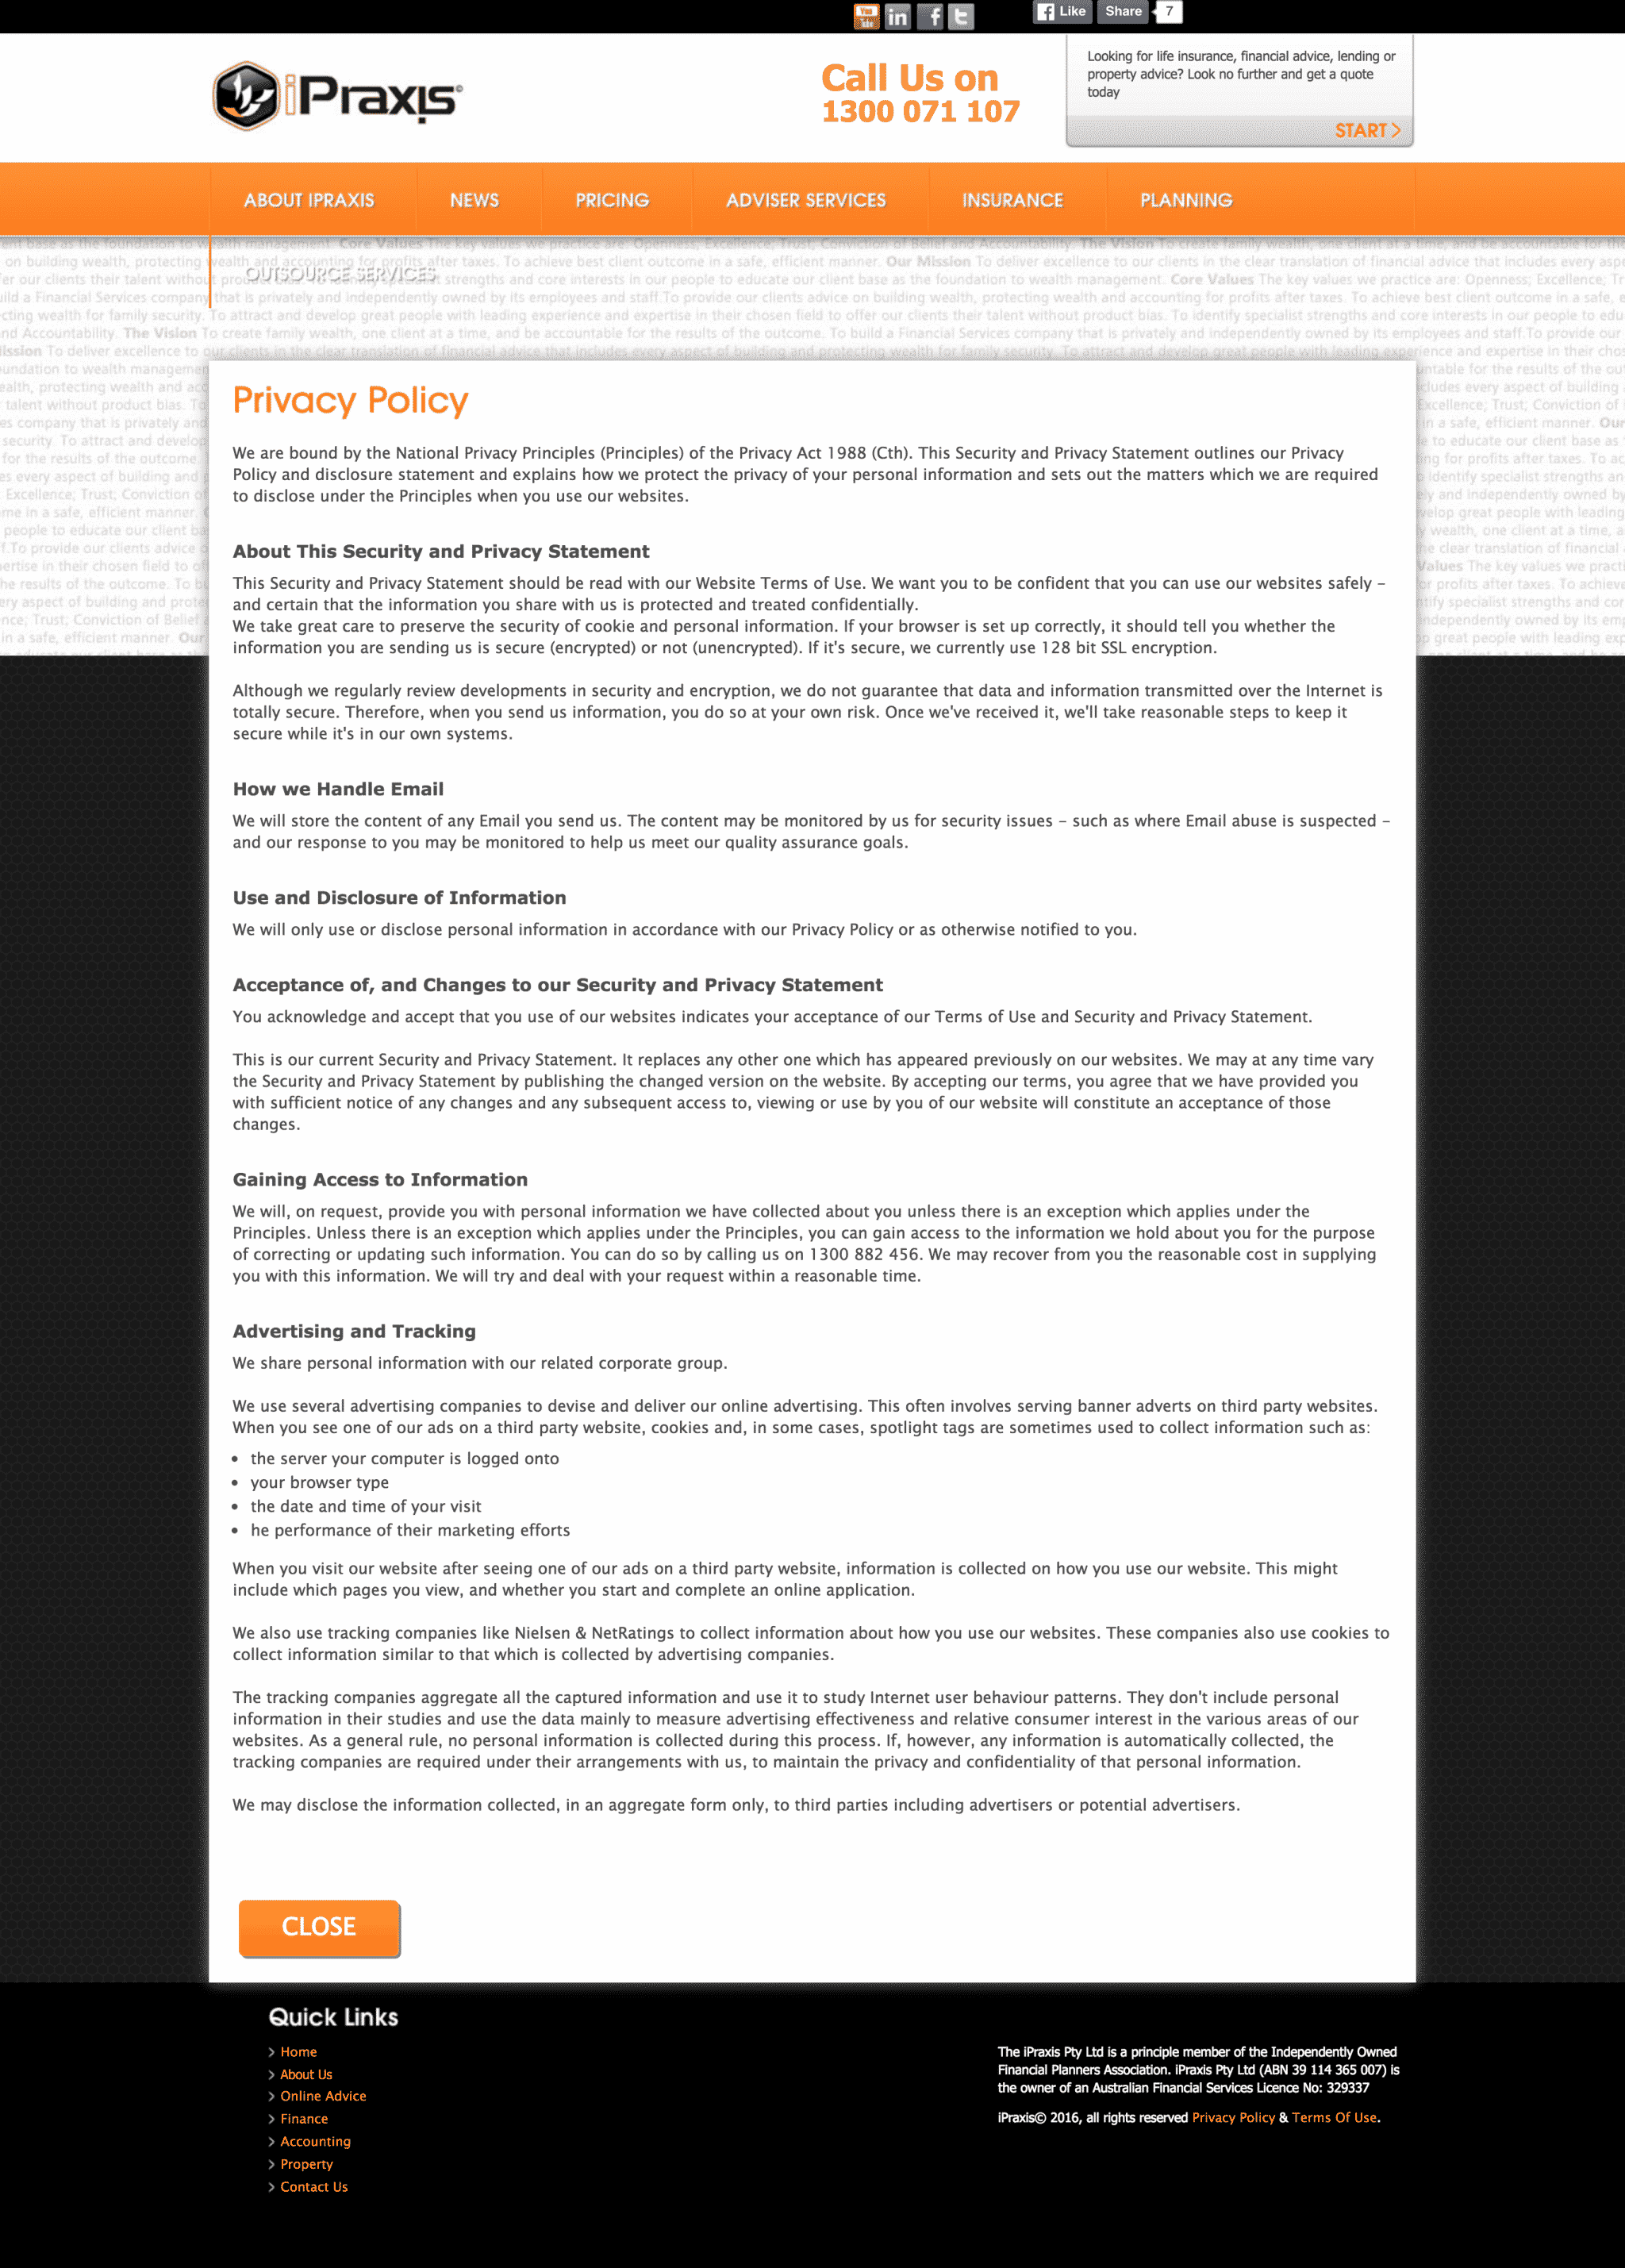 Lightbox Privacy Policy Screenshot | Disruptive Advertising